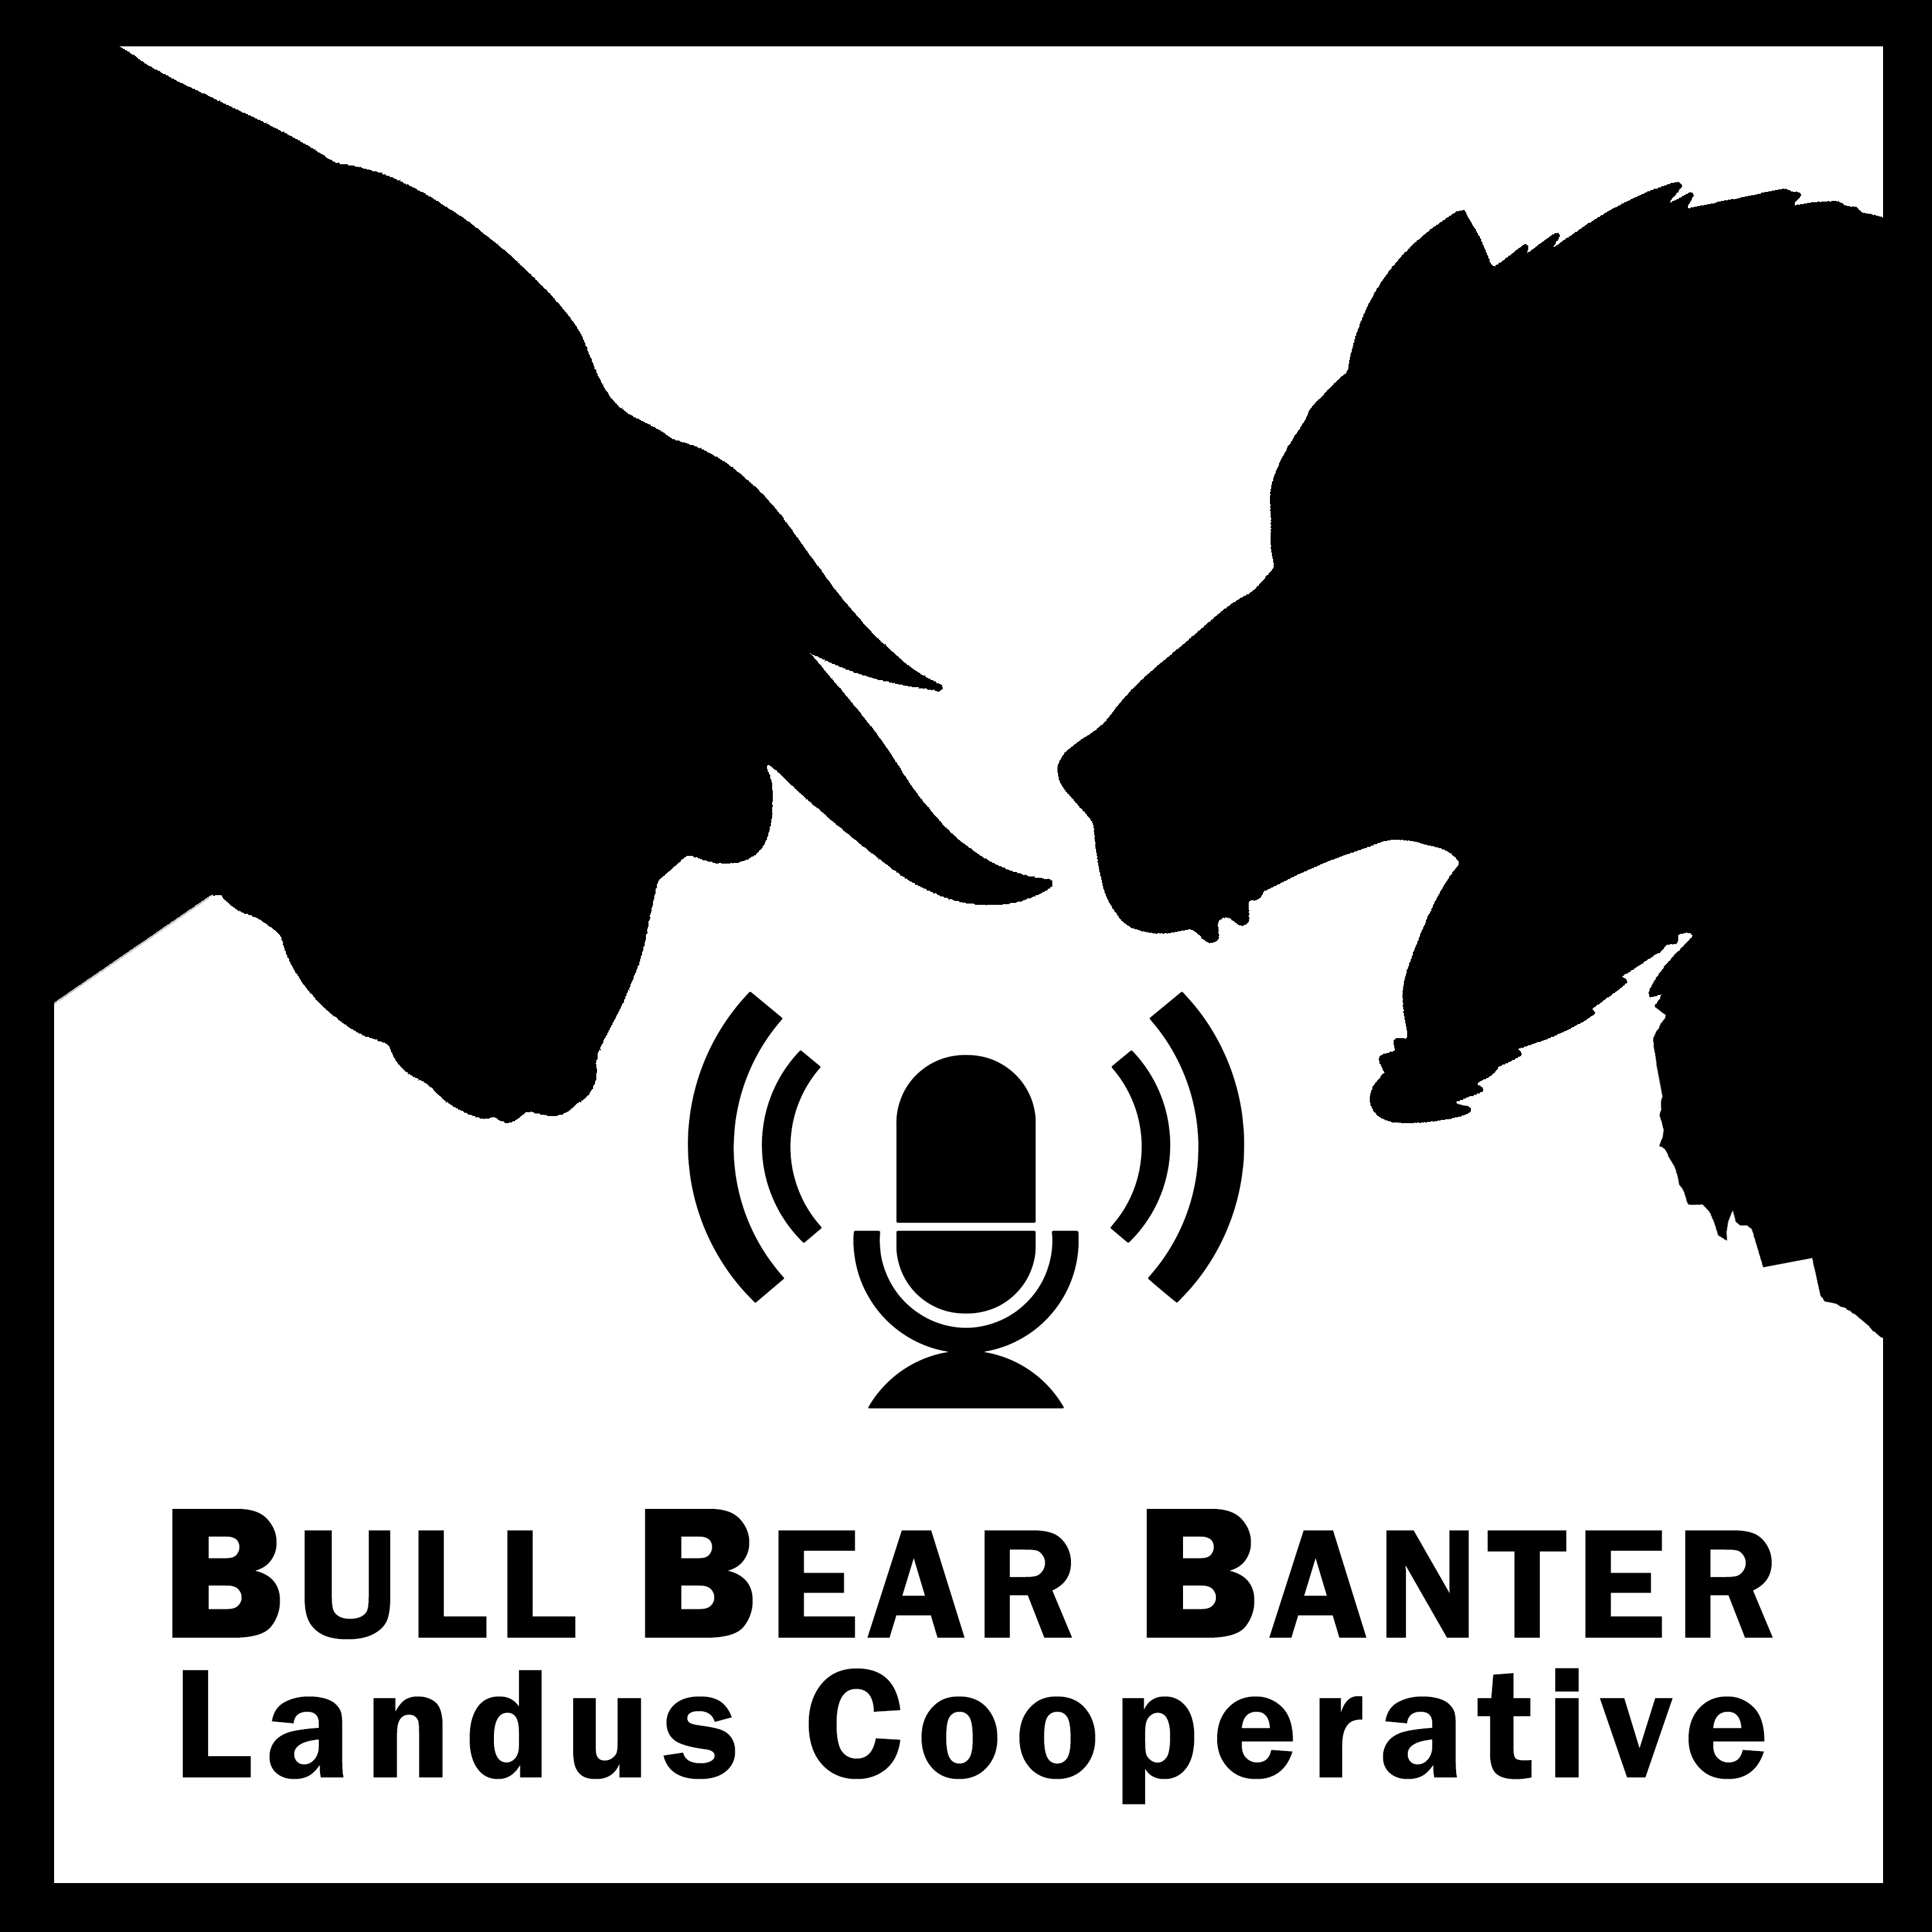 The Landus Cooperative Experience Podcast